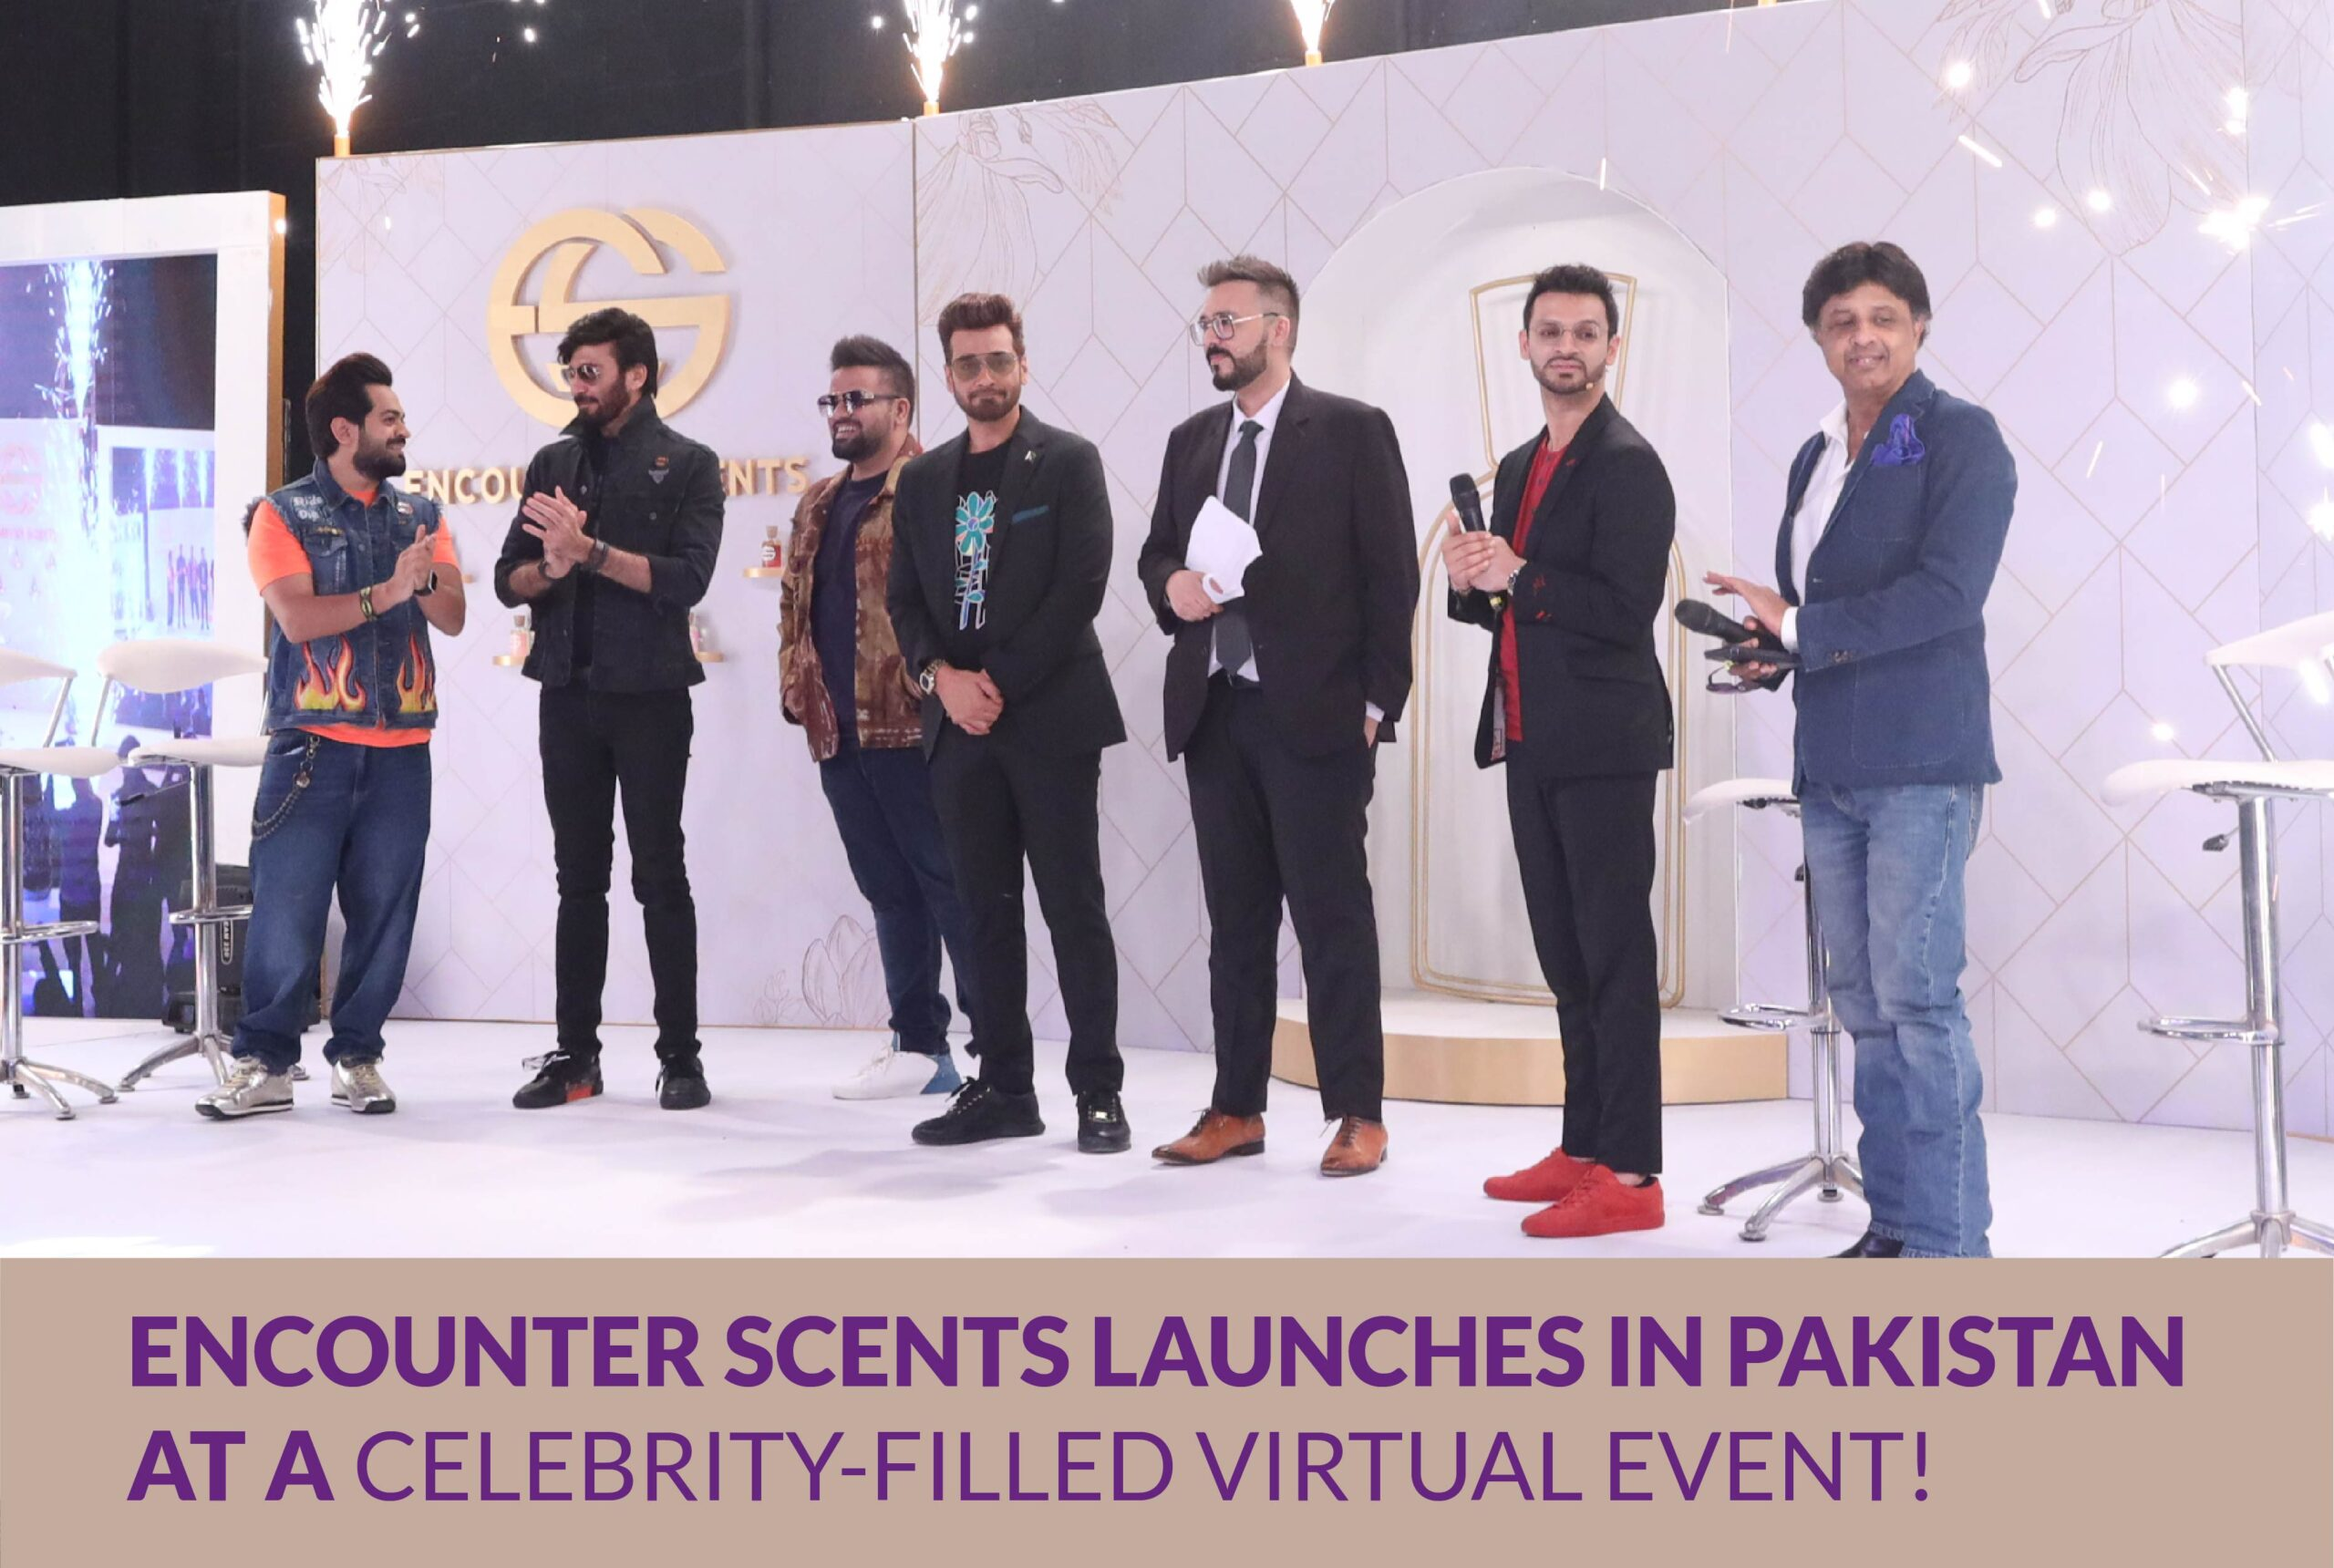 ENCOUNTER SCENTS LAUNCHES IN PAKISTAN